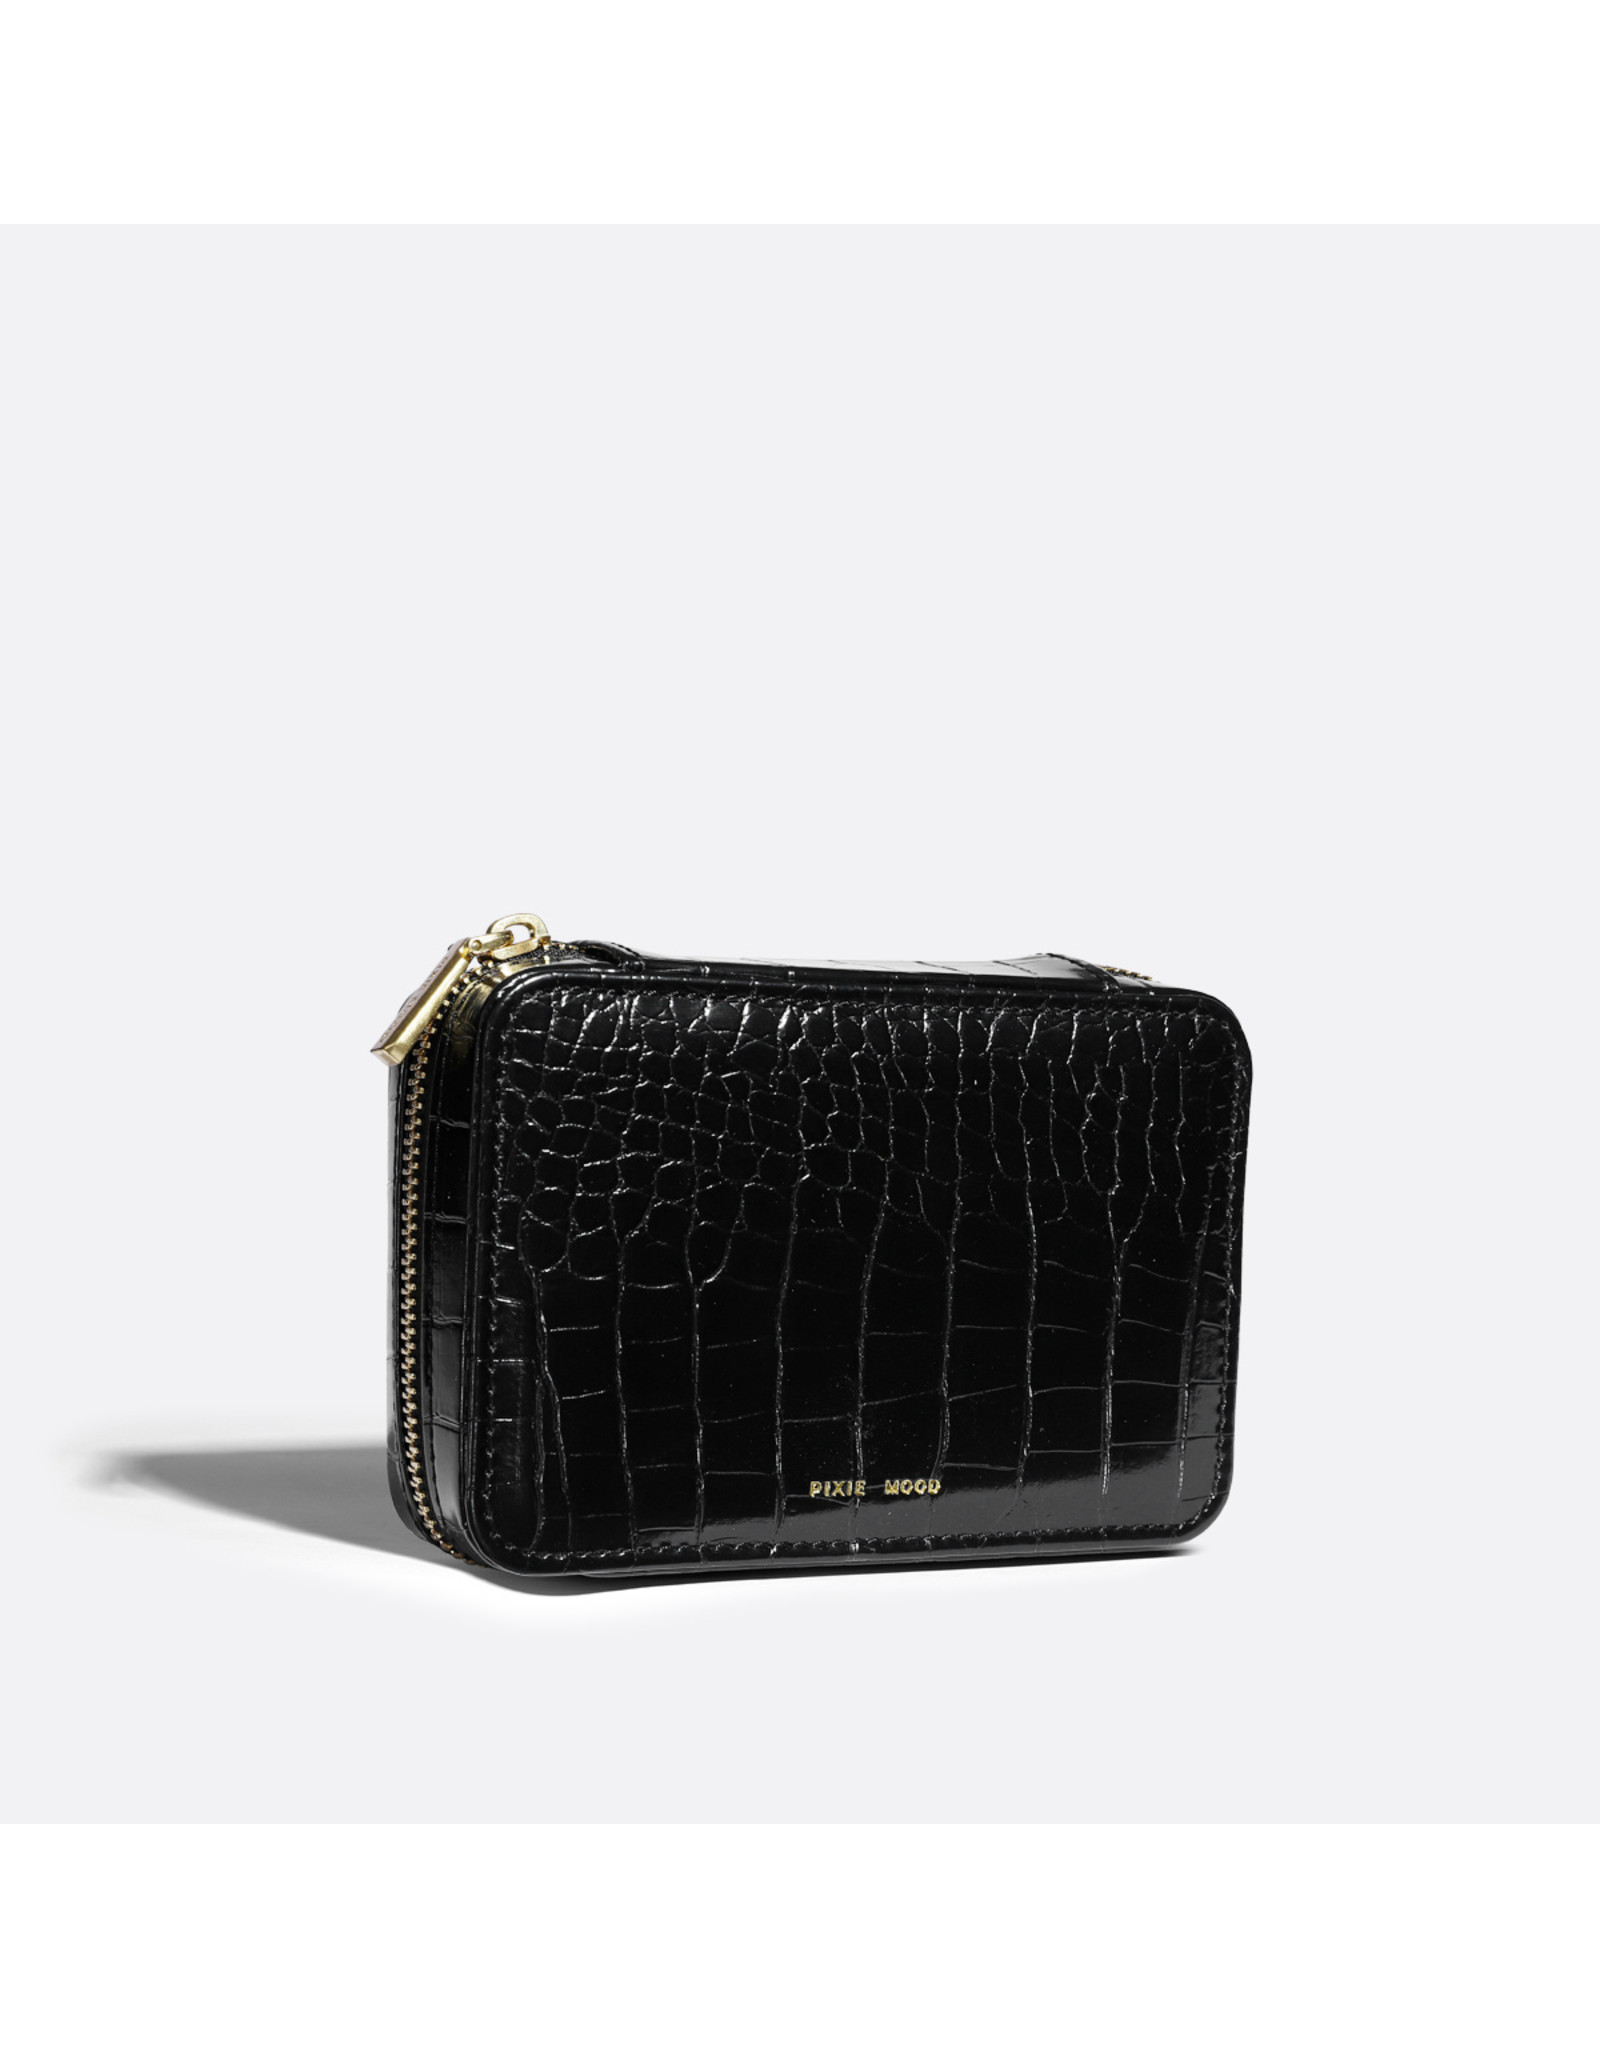 Pixie Mood - Blake Travel Jewelry Case Black Croc